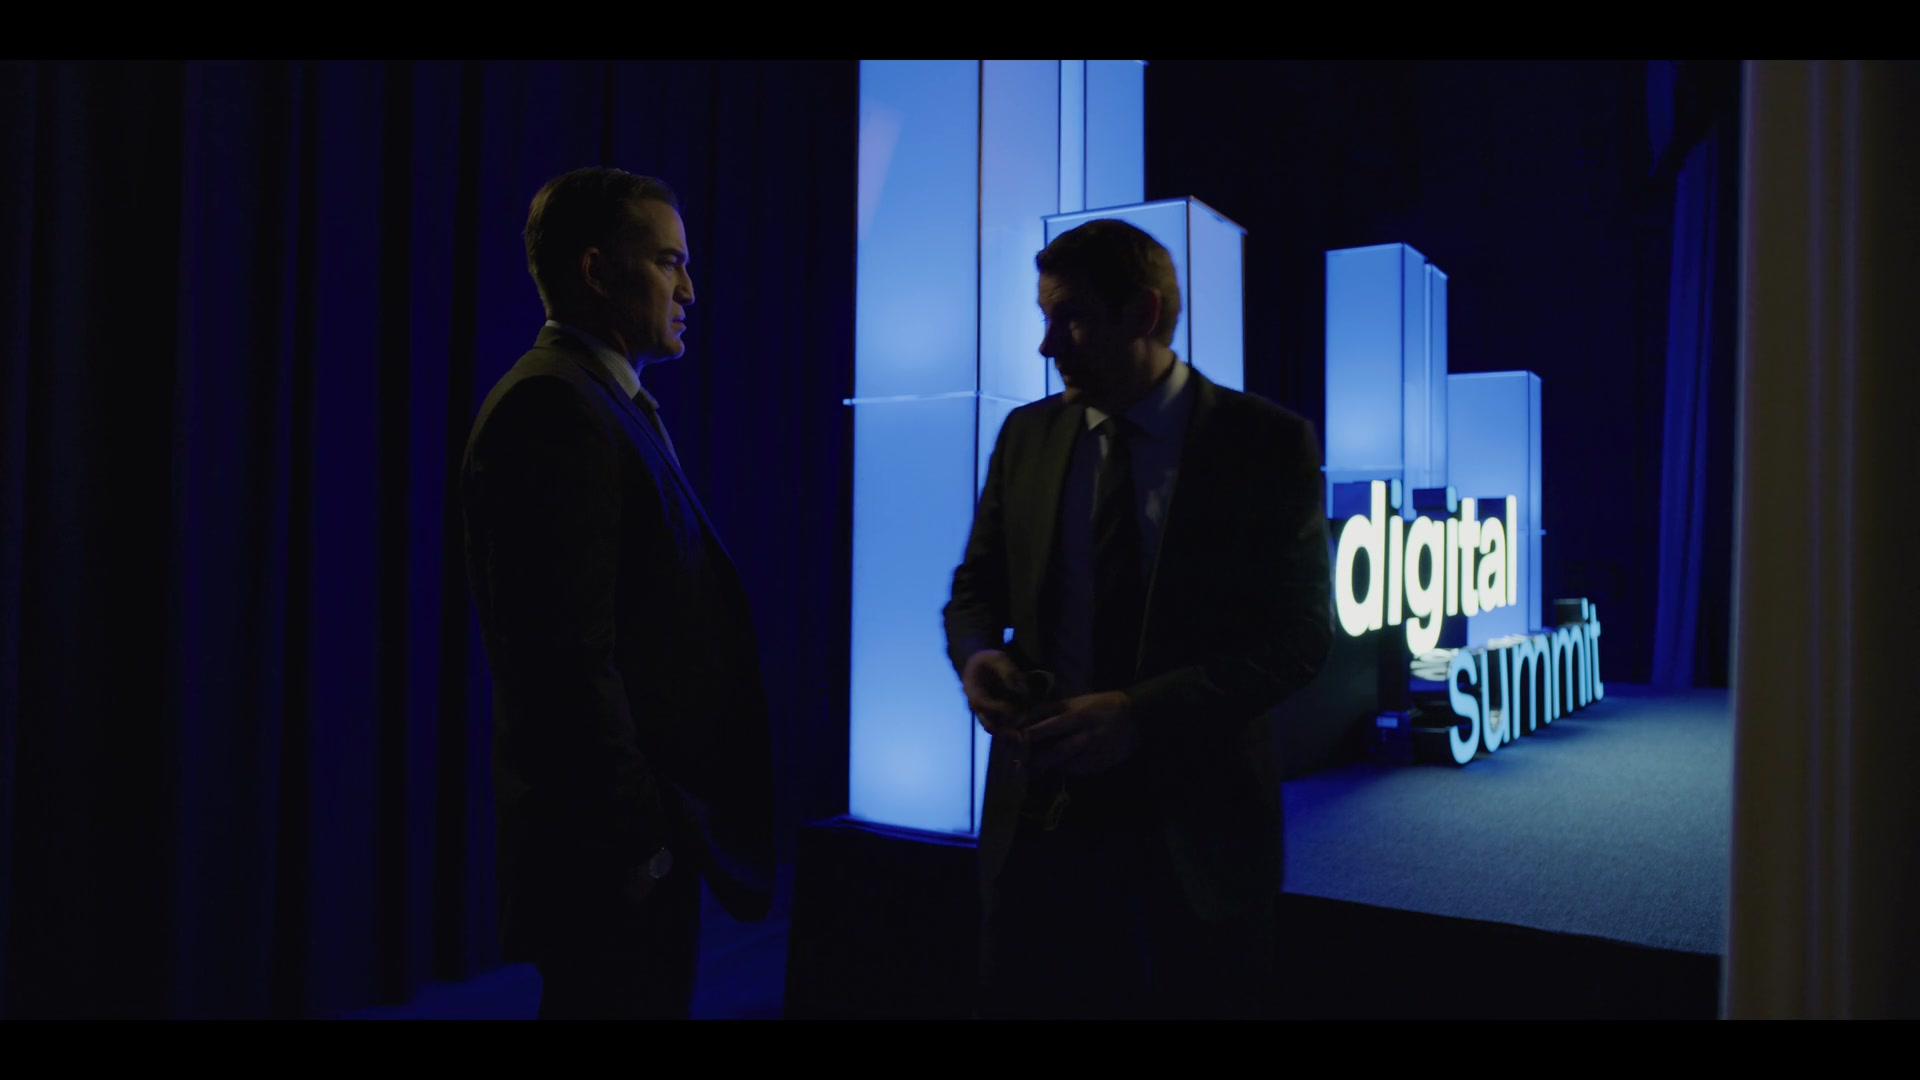 Digital Summit In House Of Cards Season 6 Episode 7 Chapter 72 2018